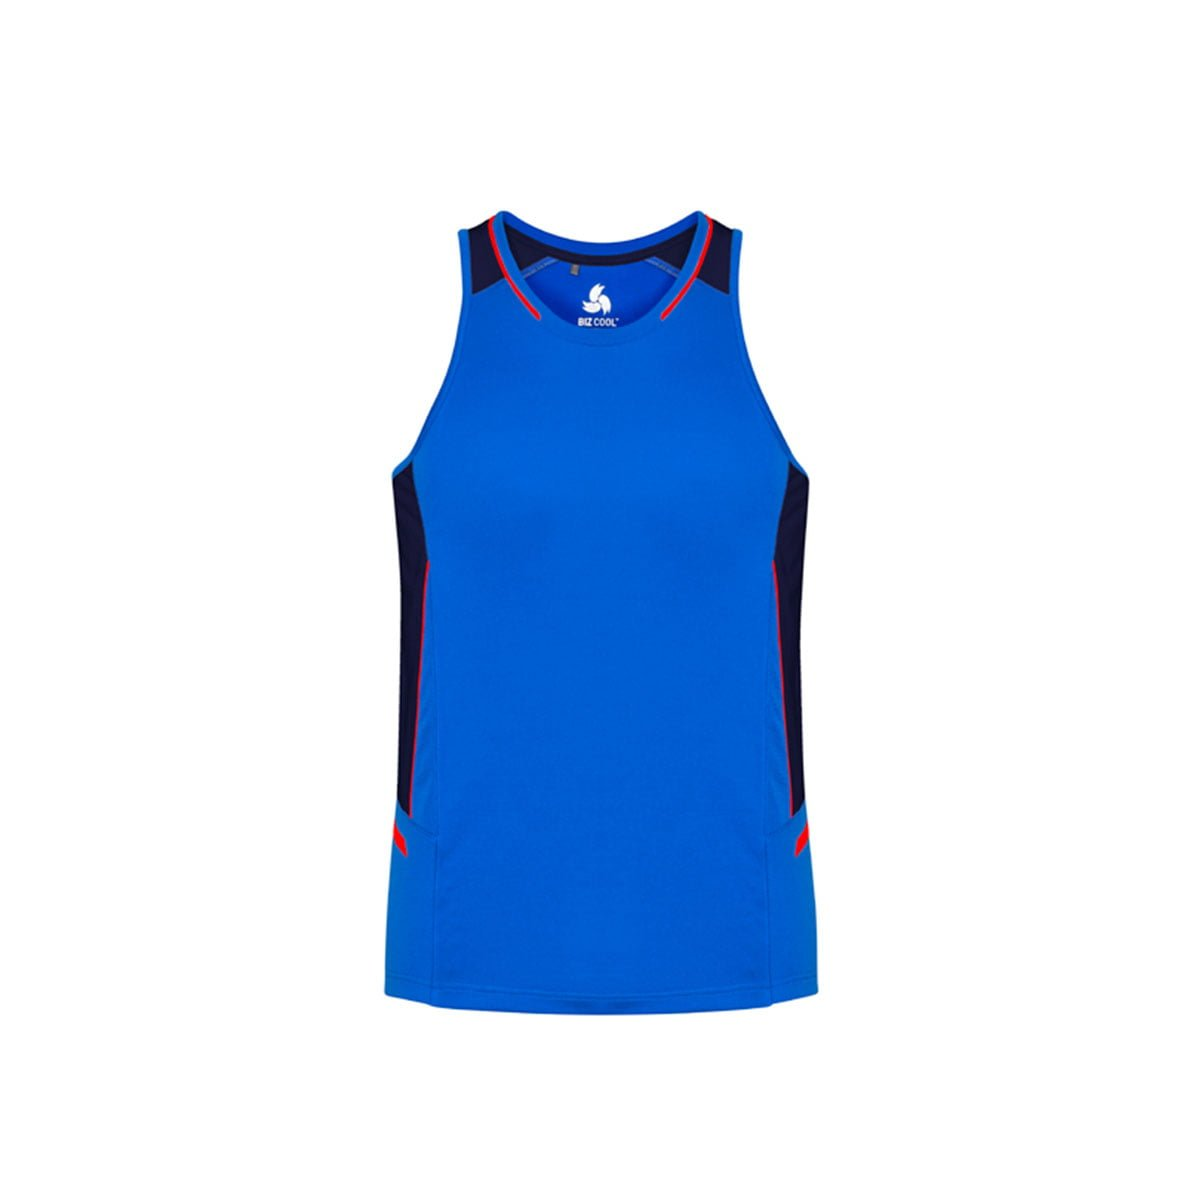 Mens Renegade Singlet-Royal / Navy / Fluoro Orange